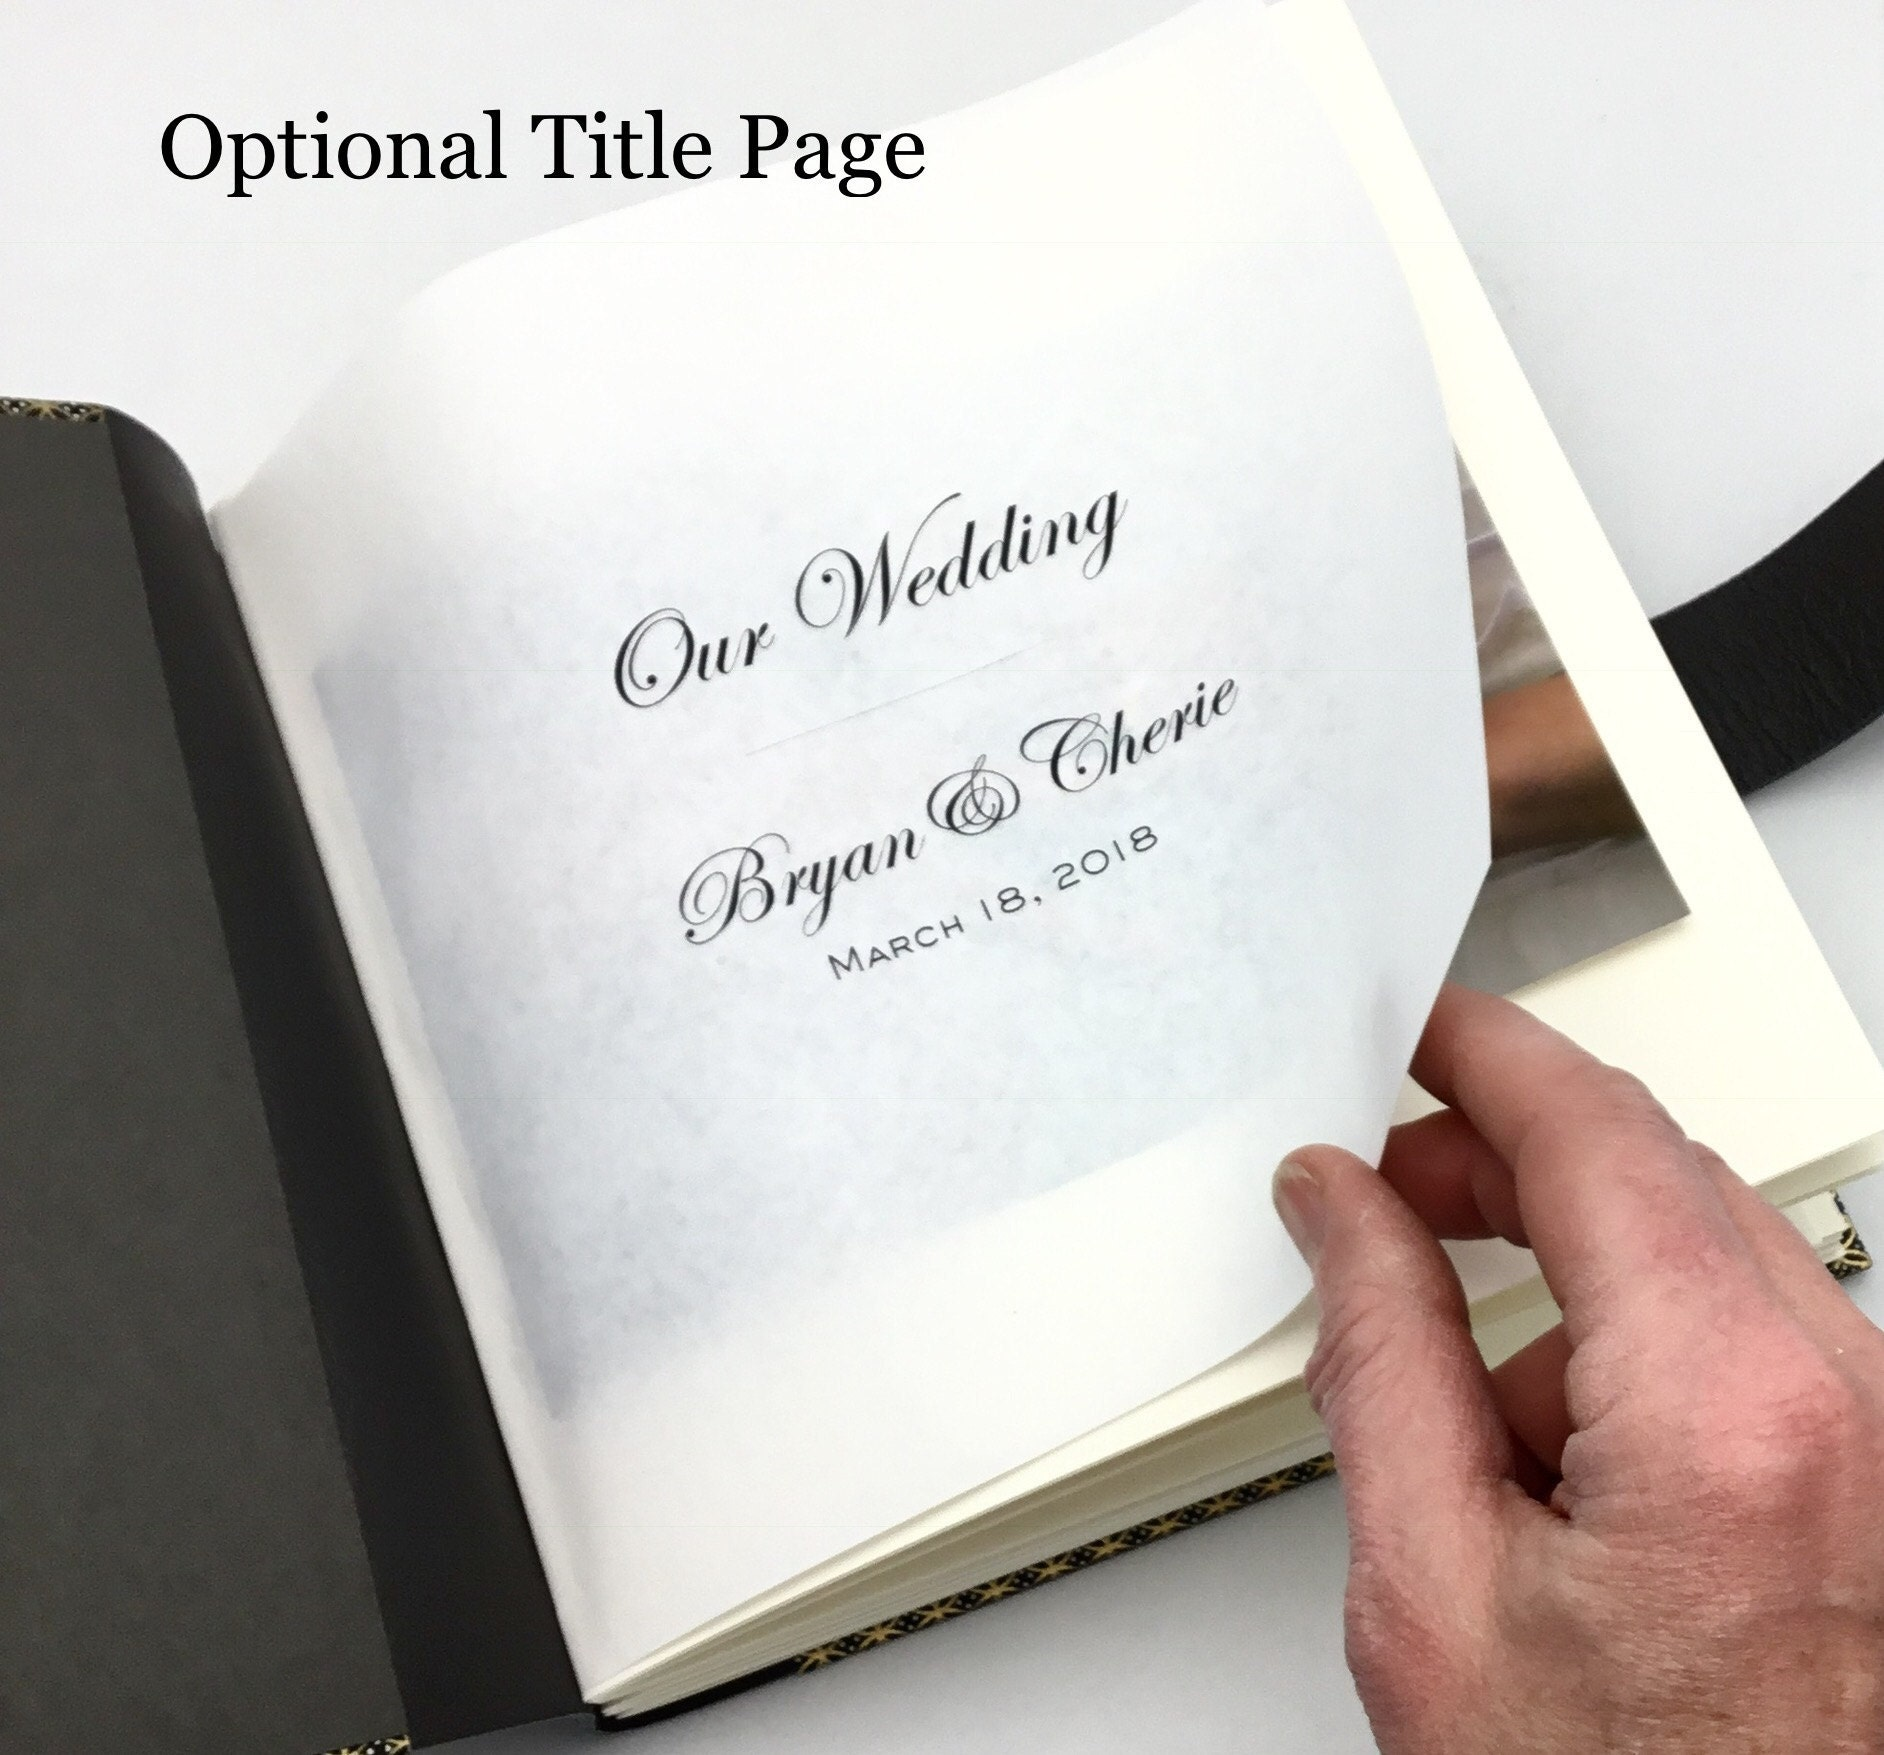 Optional Title Page